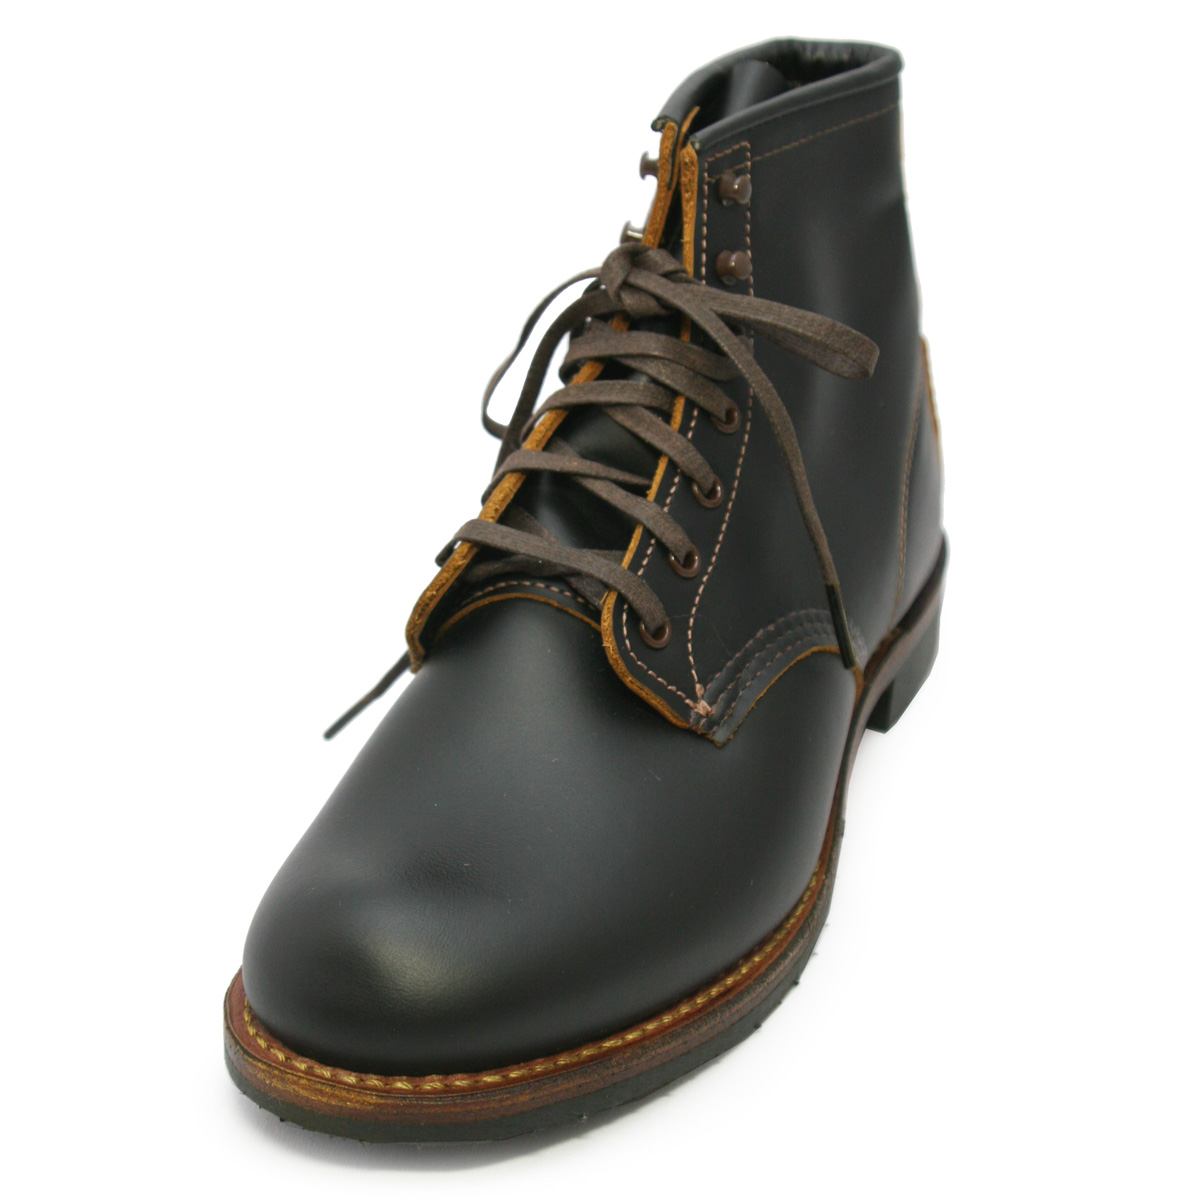 RED WING[レッド・ウィング] RW9060 BECKMAN BOOTS